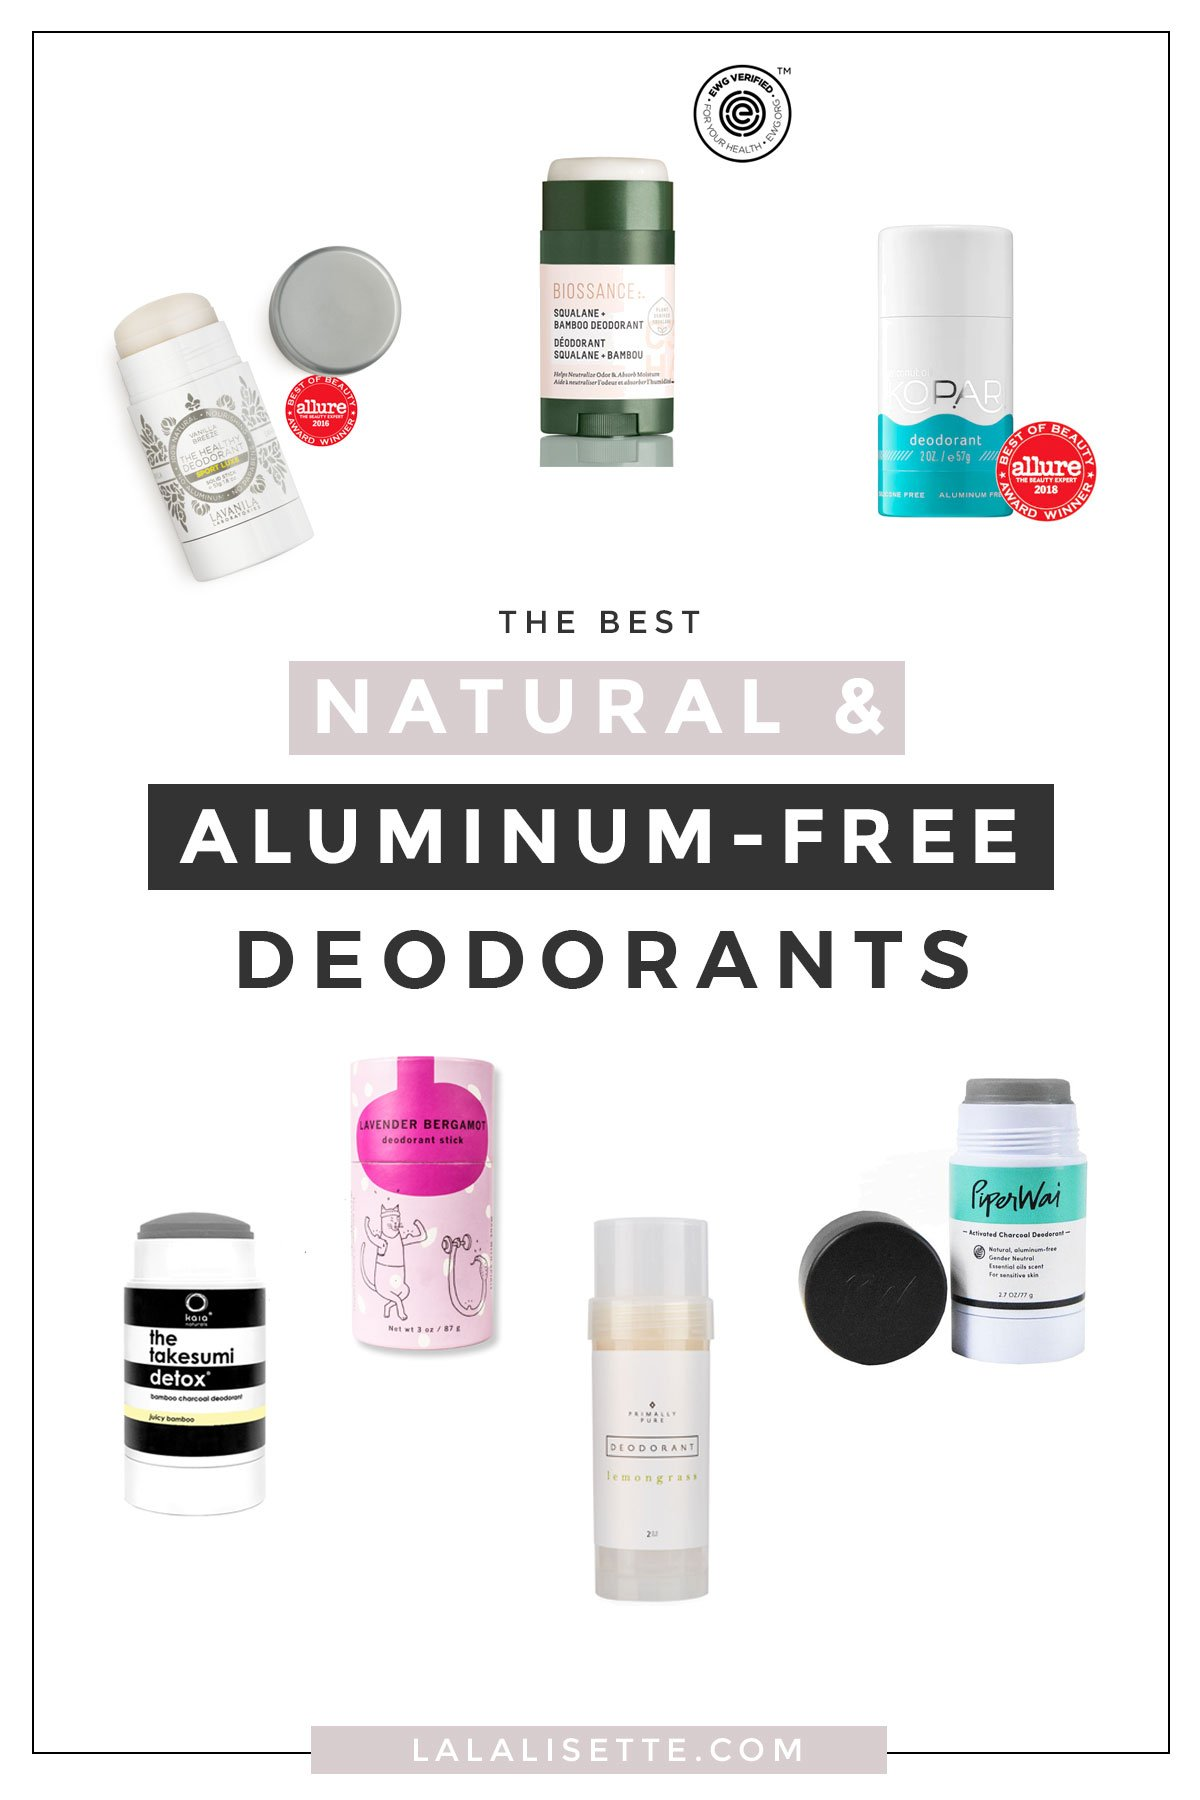 The Best Natural & Aluminum-Free Deodorants | La La Lisette